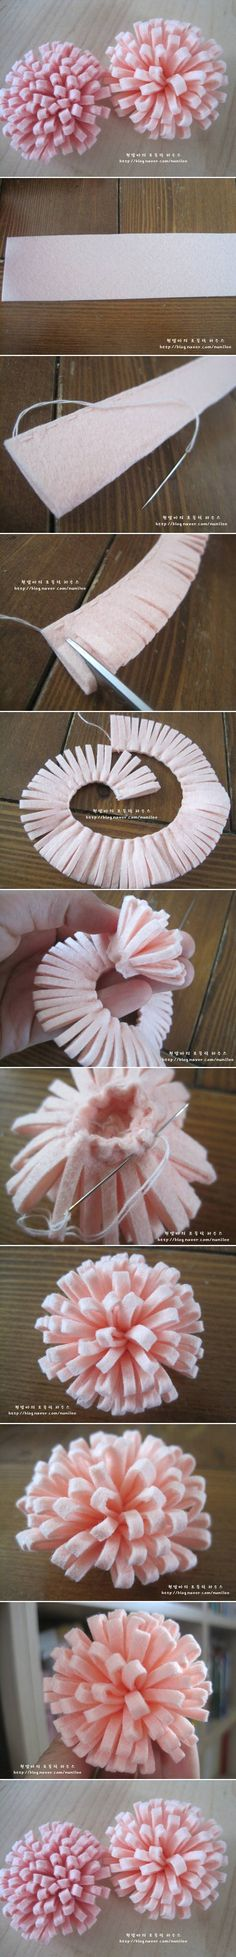 DIY Simple Easy Felt Flower - bjl